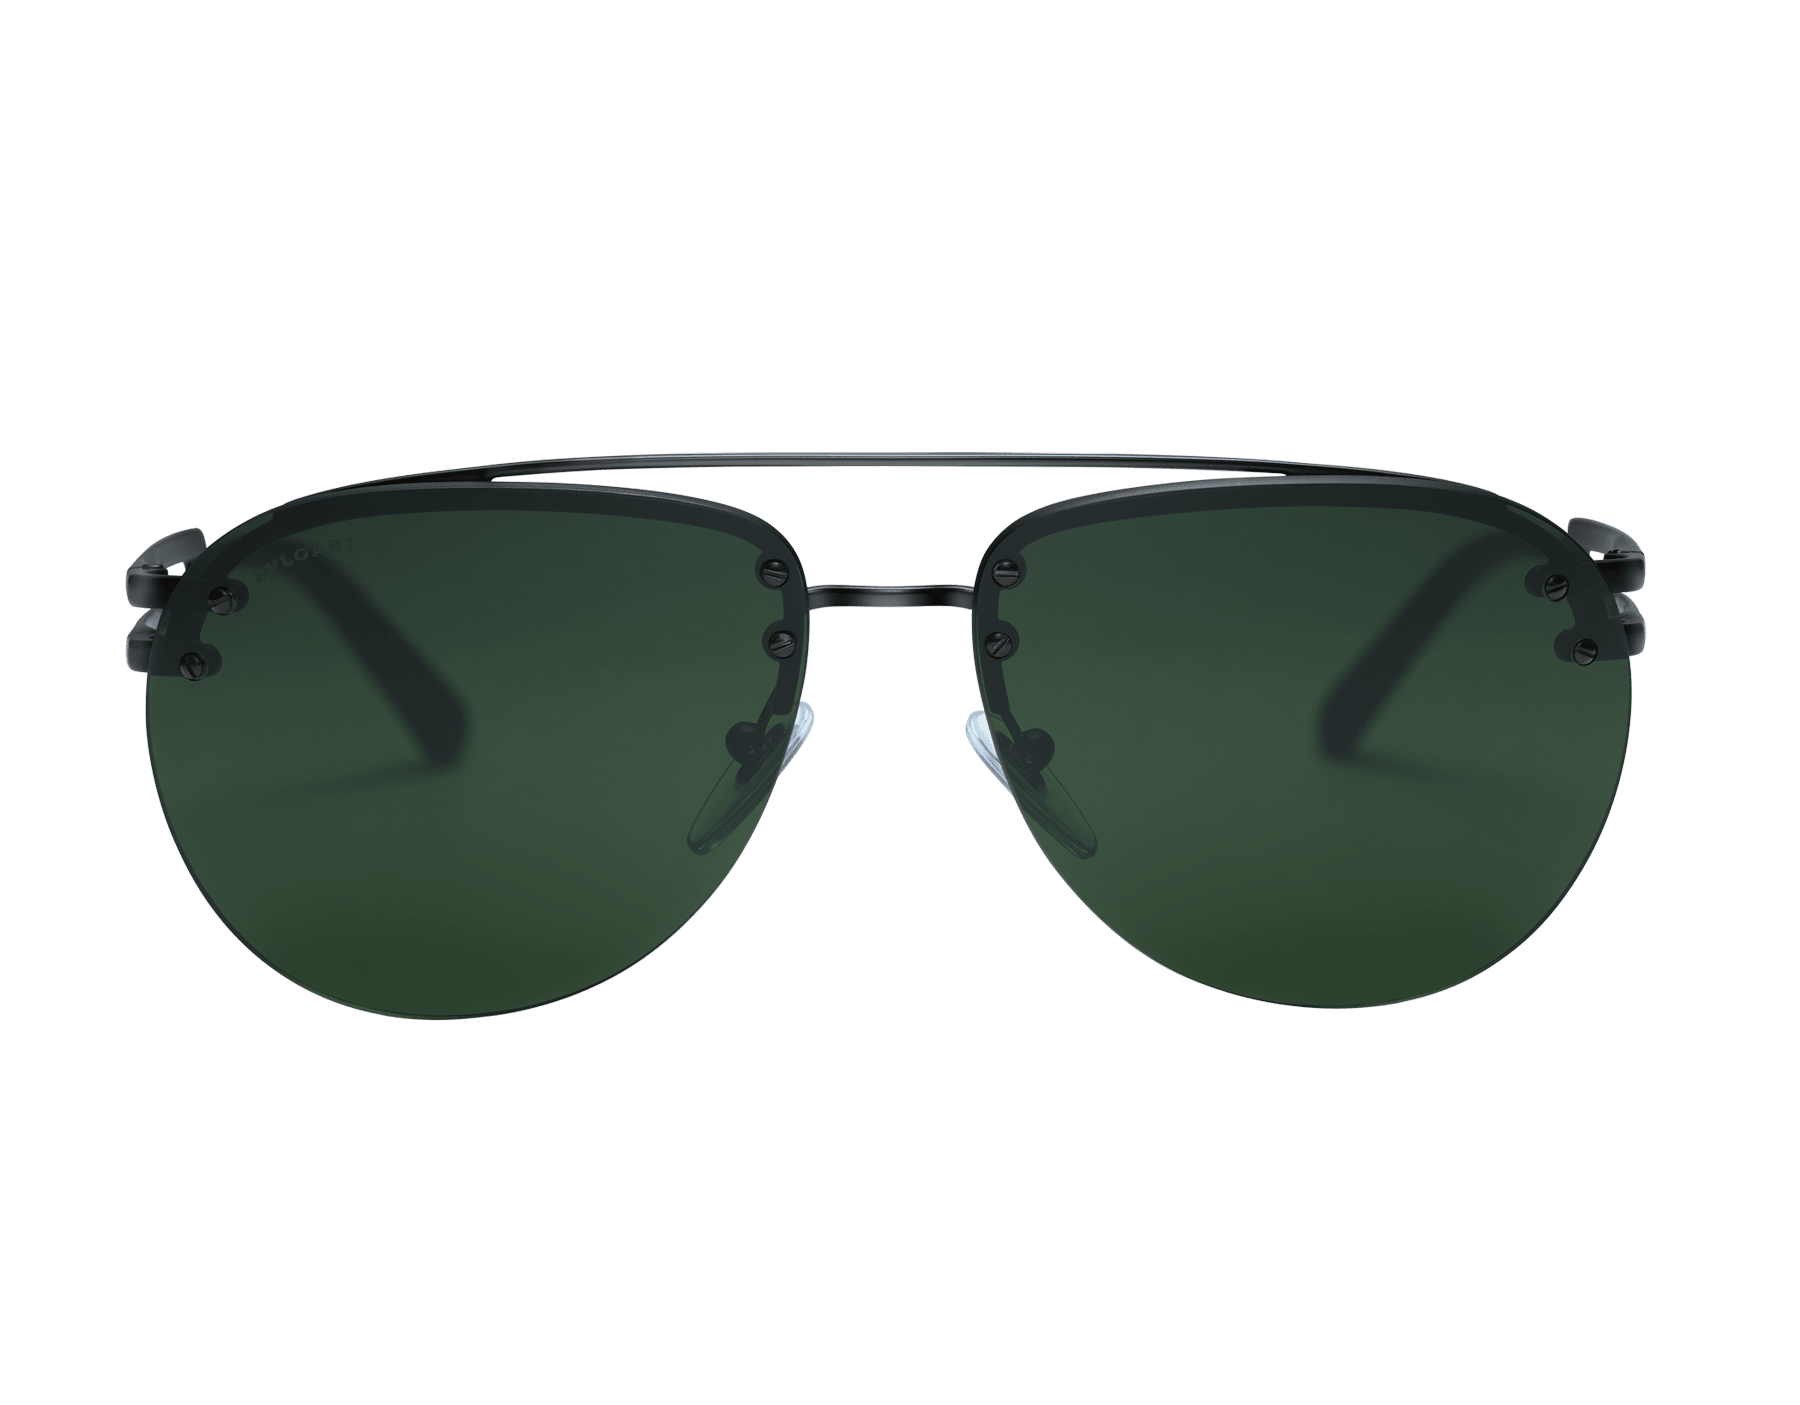 Bvlgari Bvlgari metal double bridge aviator sunglasses. 904044 image 2